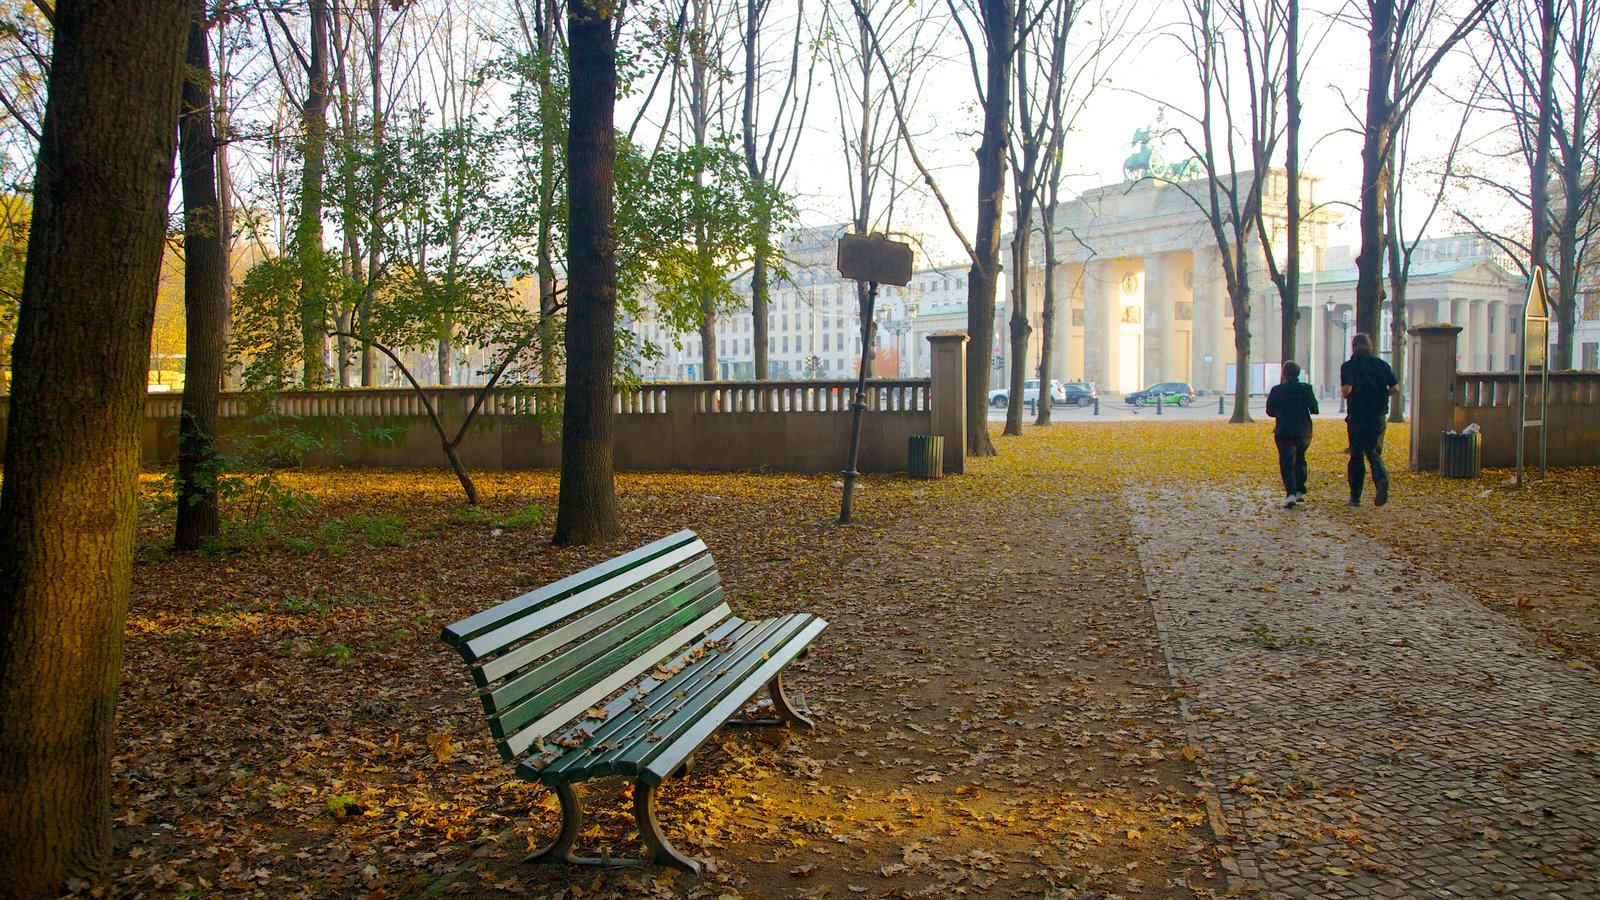 Brandenburg Gate showing a park, a monument and autumn leaves